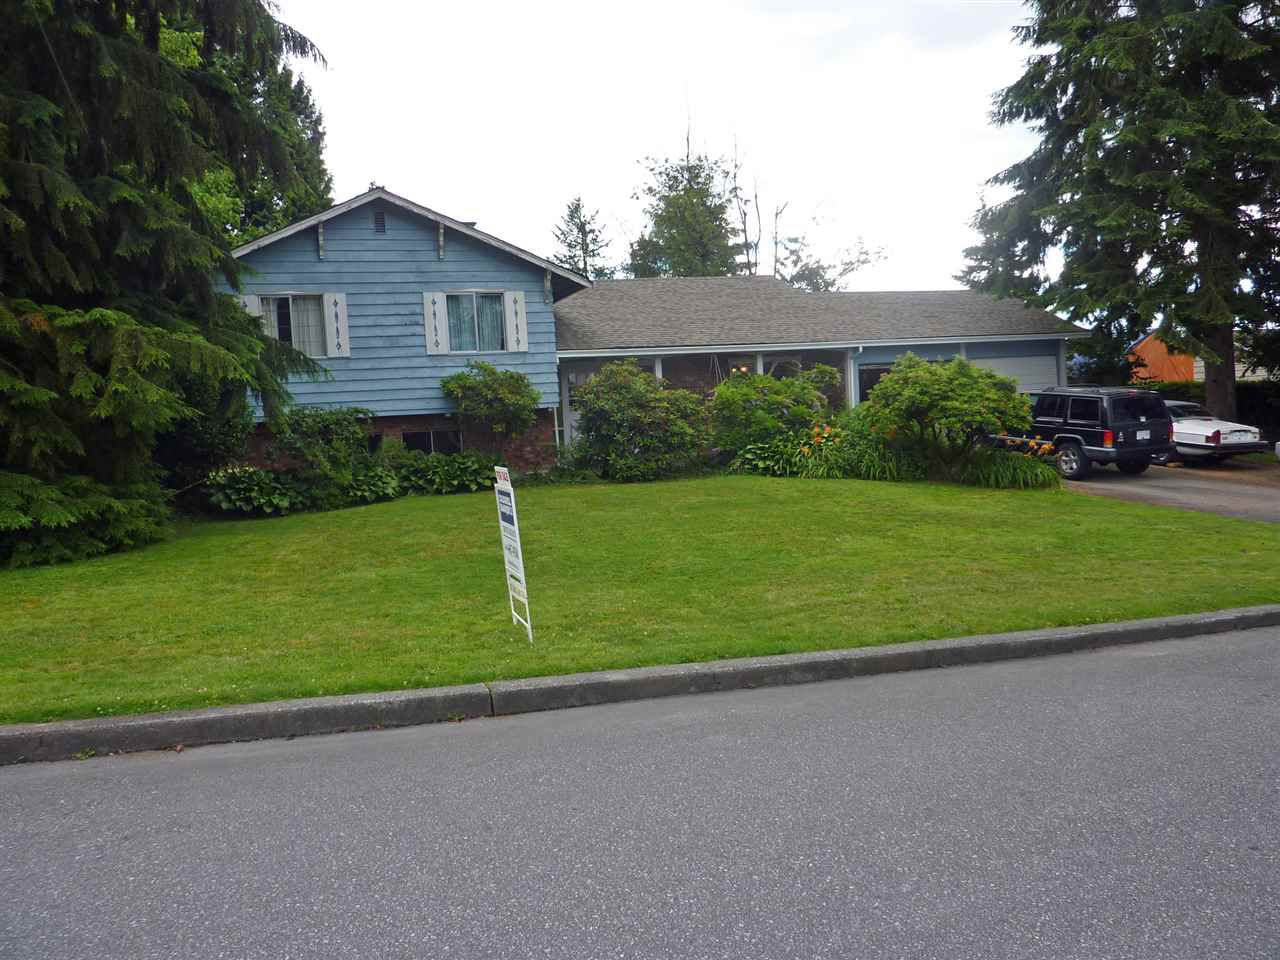 Main Photo: 20292 PATTERSON Avenue in Maple Ridge: Southwest Maple Ridge House for sale : MLS®# R2087703